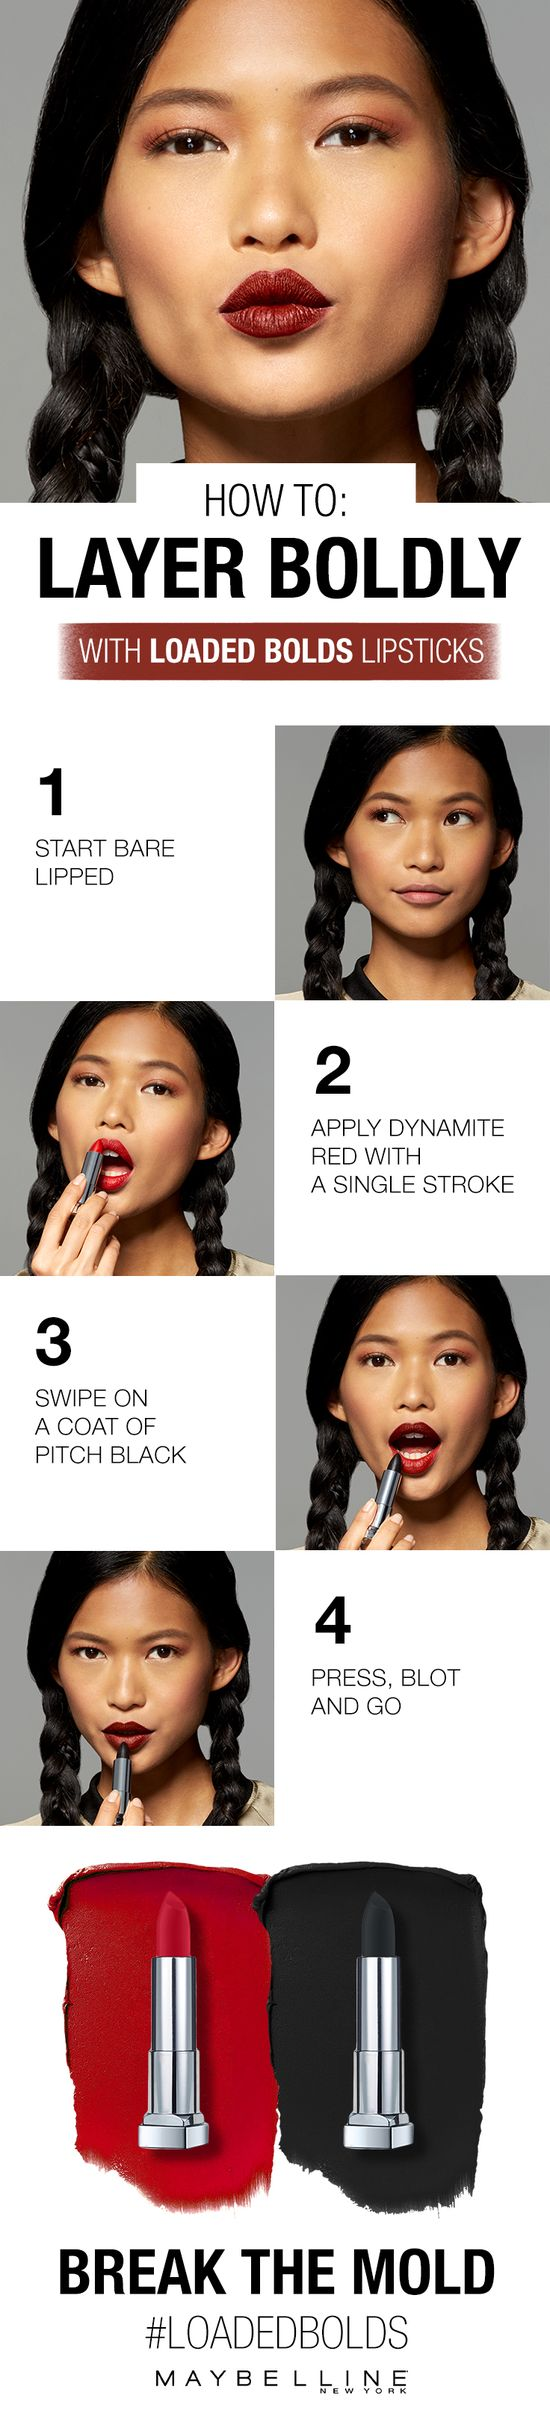 From colorful lips to a smoky eye to a dramatic eyeliner and bold lashes -  Maybelline has the  beauty tips, tricks and hacks you are searching for.  Get the Look: Bold Looks  Board